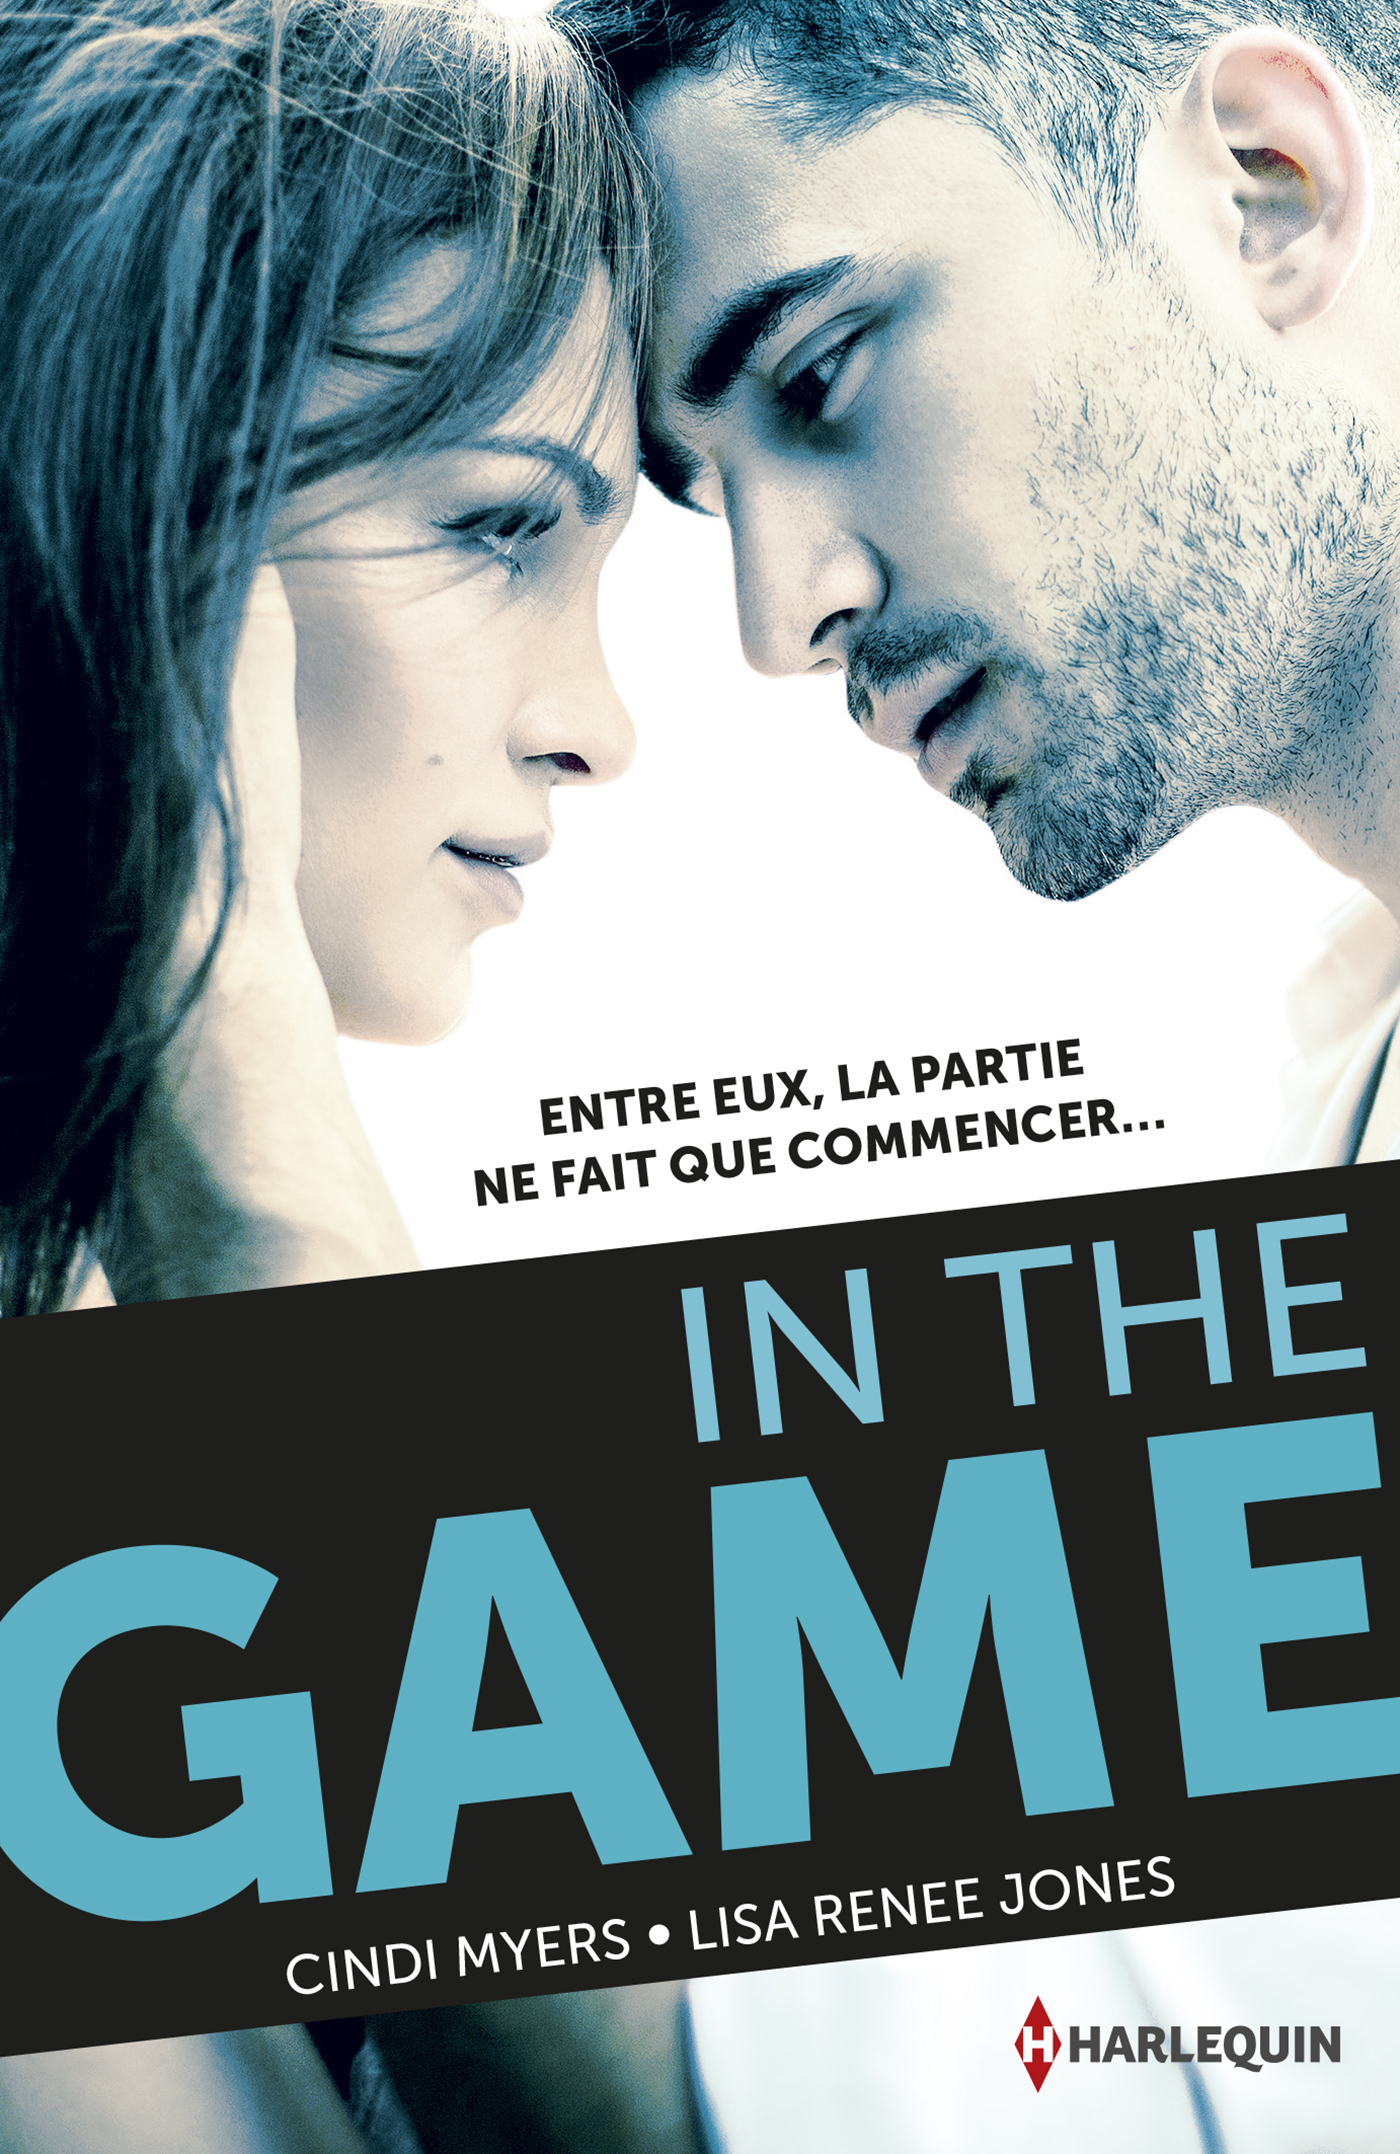 Cindy Myers, Lisa Renée Jones - In the game / éditions Harlequin